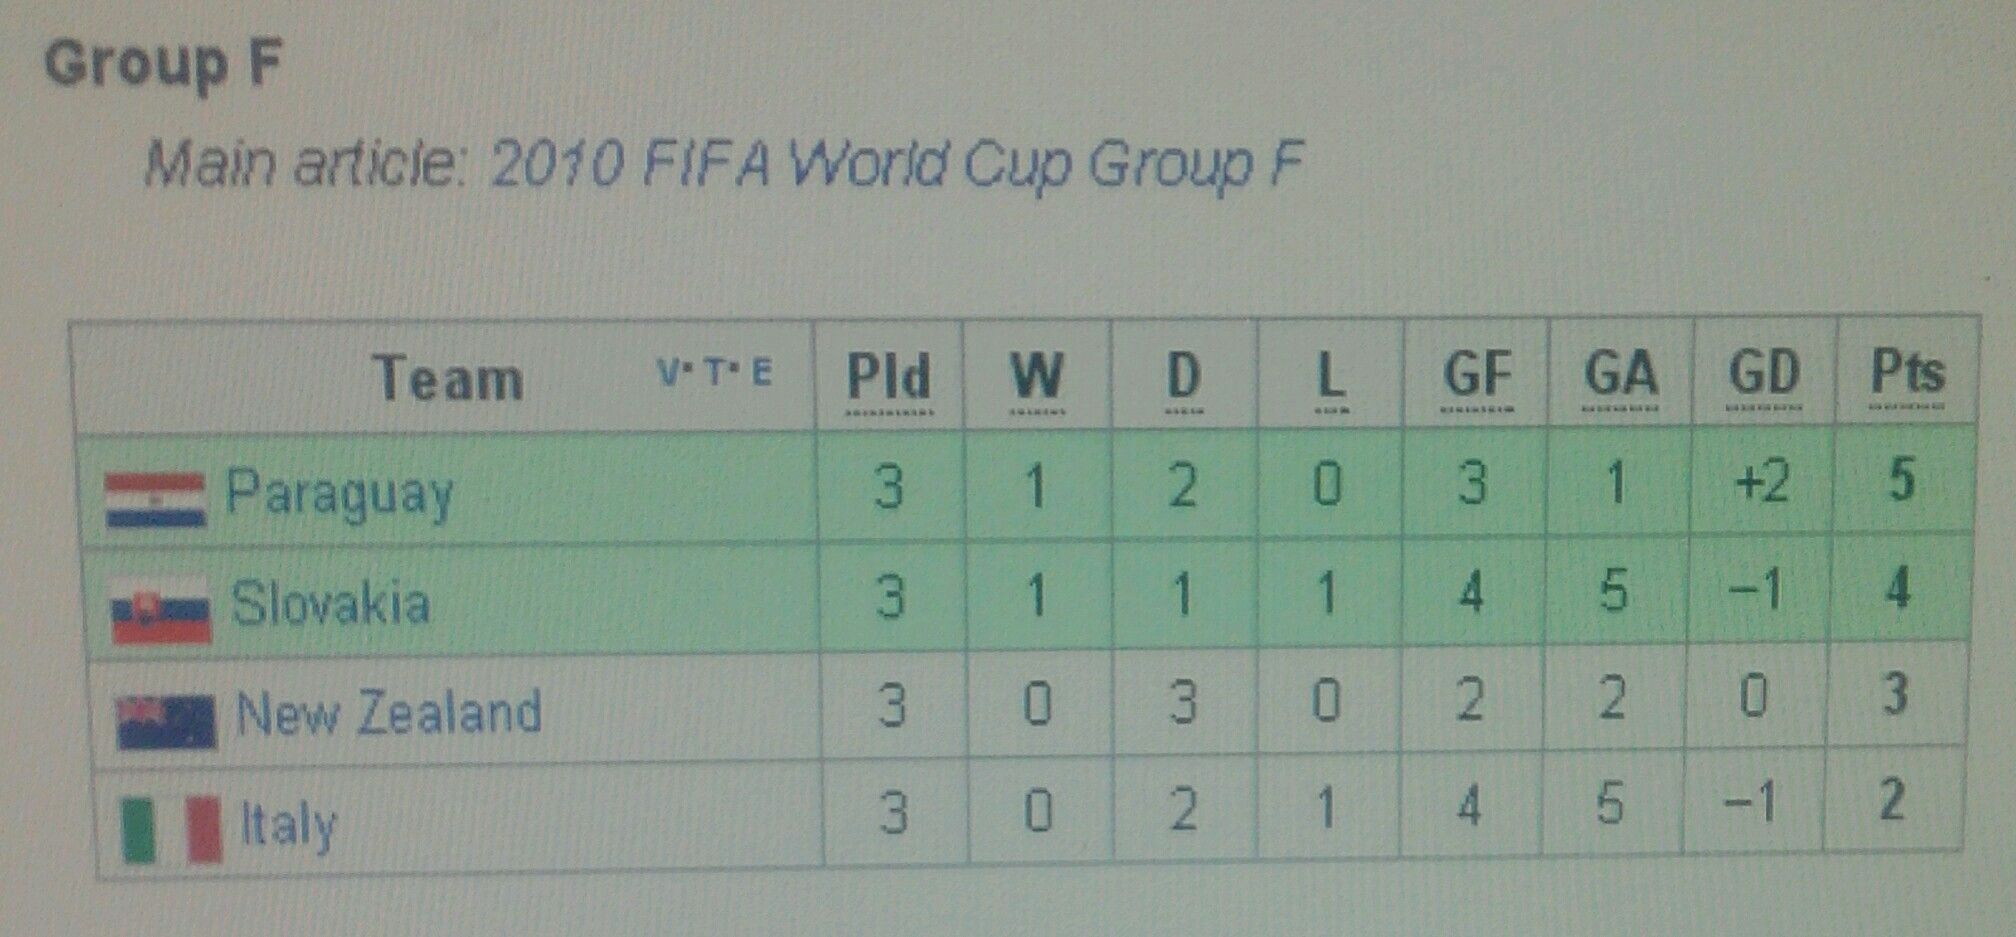 Final Standings Group F For The 2010 World Cup Finals Must Rate As Italy S Worst Tournament Ever As They Finish B World Cup Groups World Cup World Cup Final